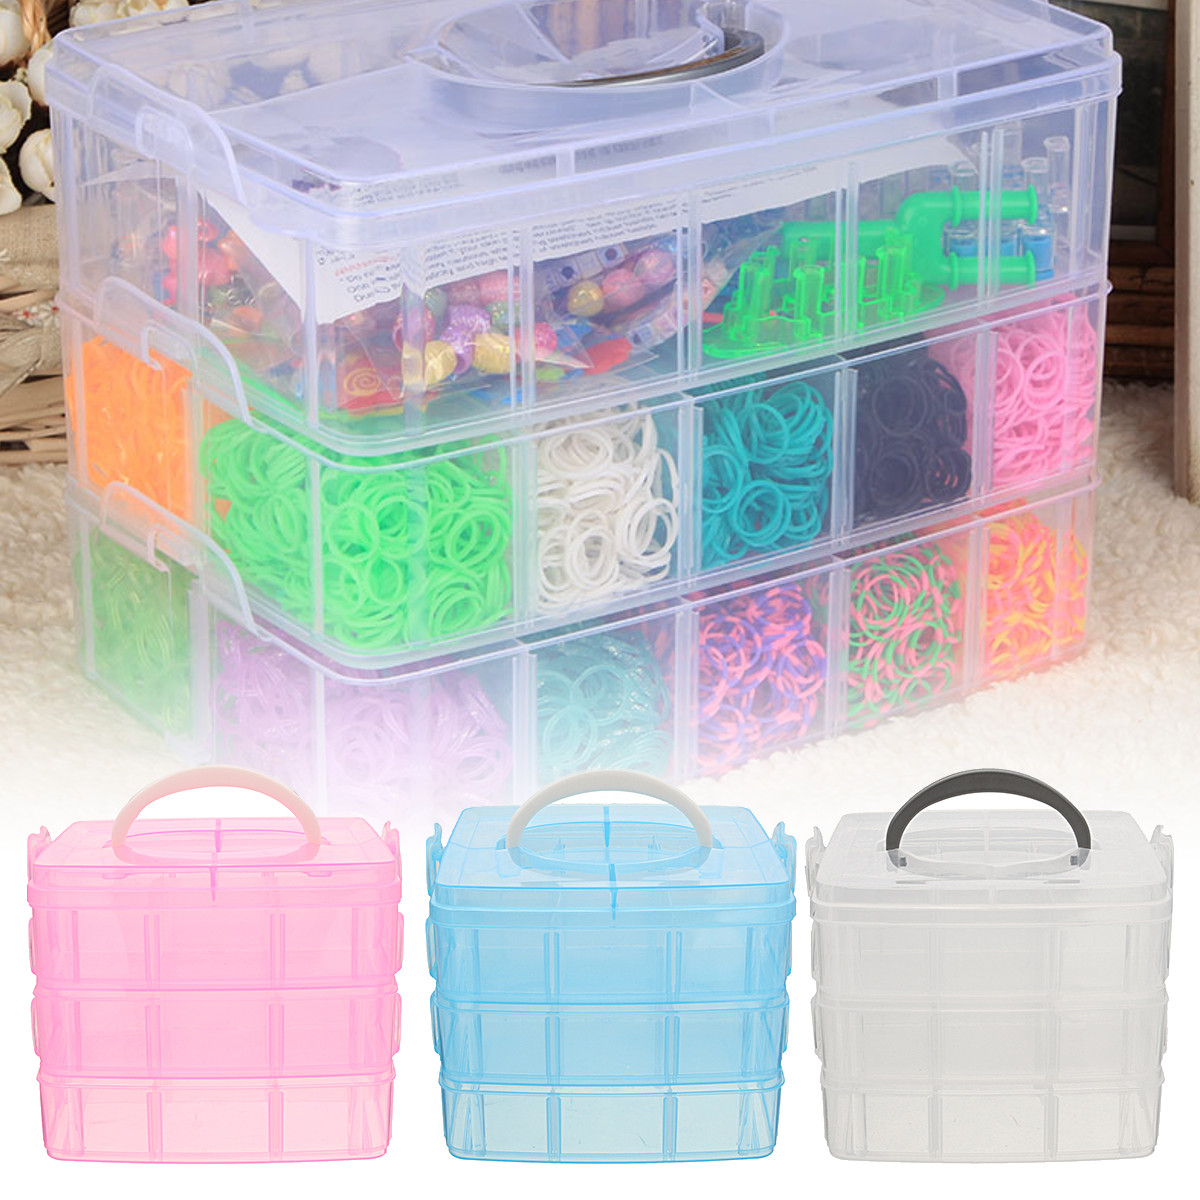 Meigar 3 Tier Stackable Sewing Embroidery Organizer Plastic Jewelry